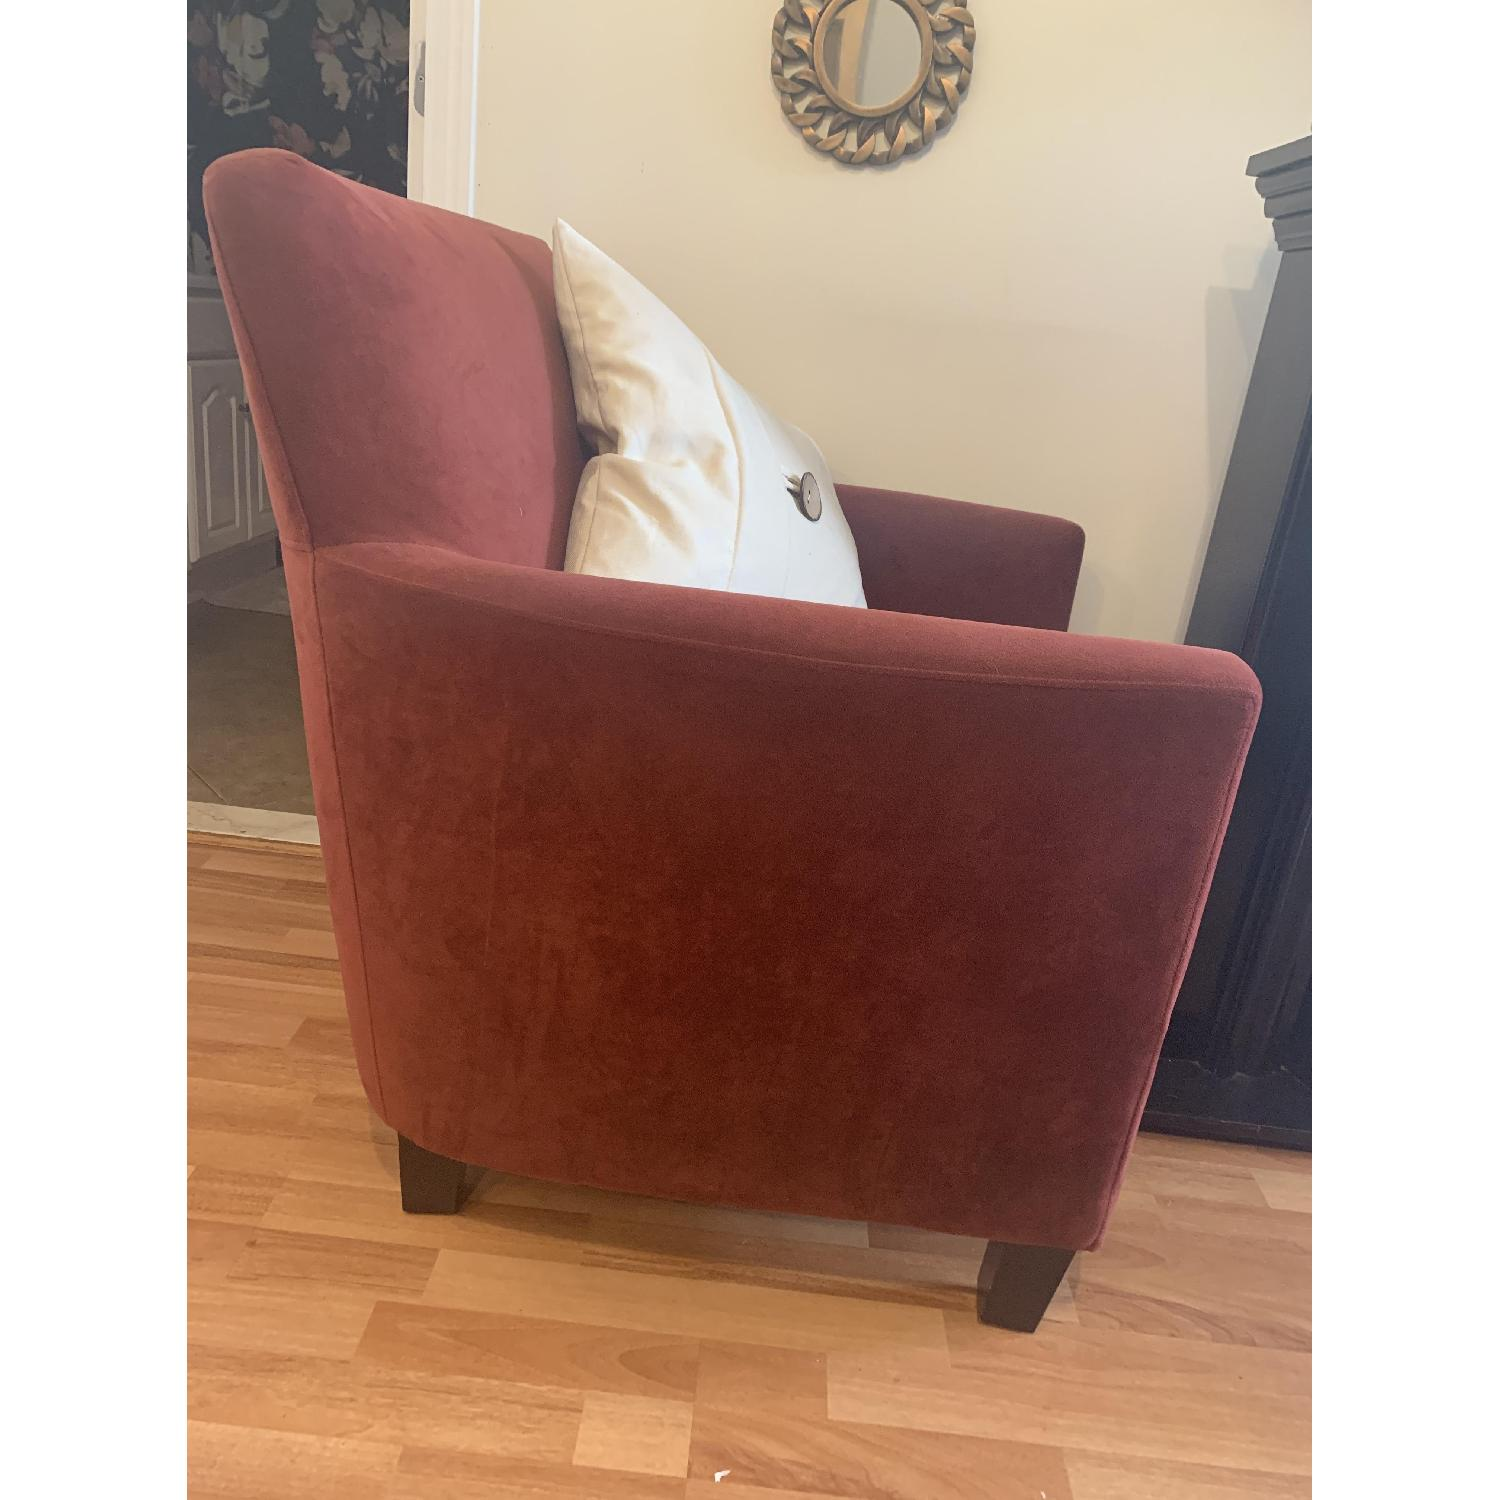 Dark Red Arm Chairs - image-2